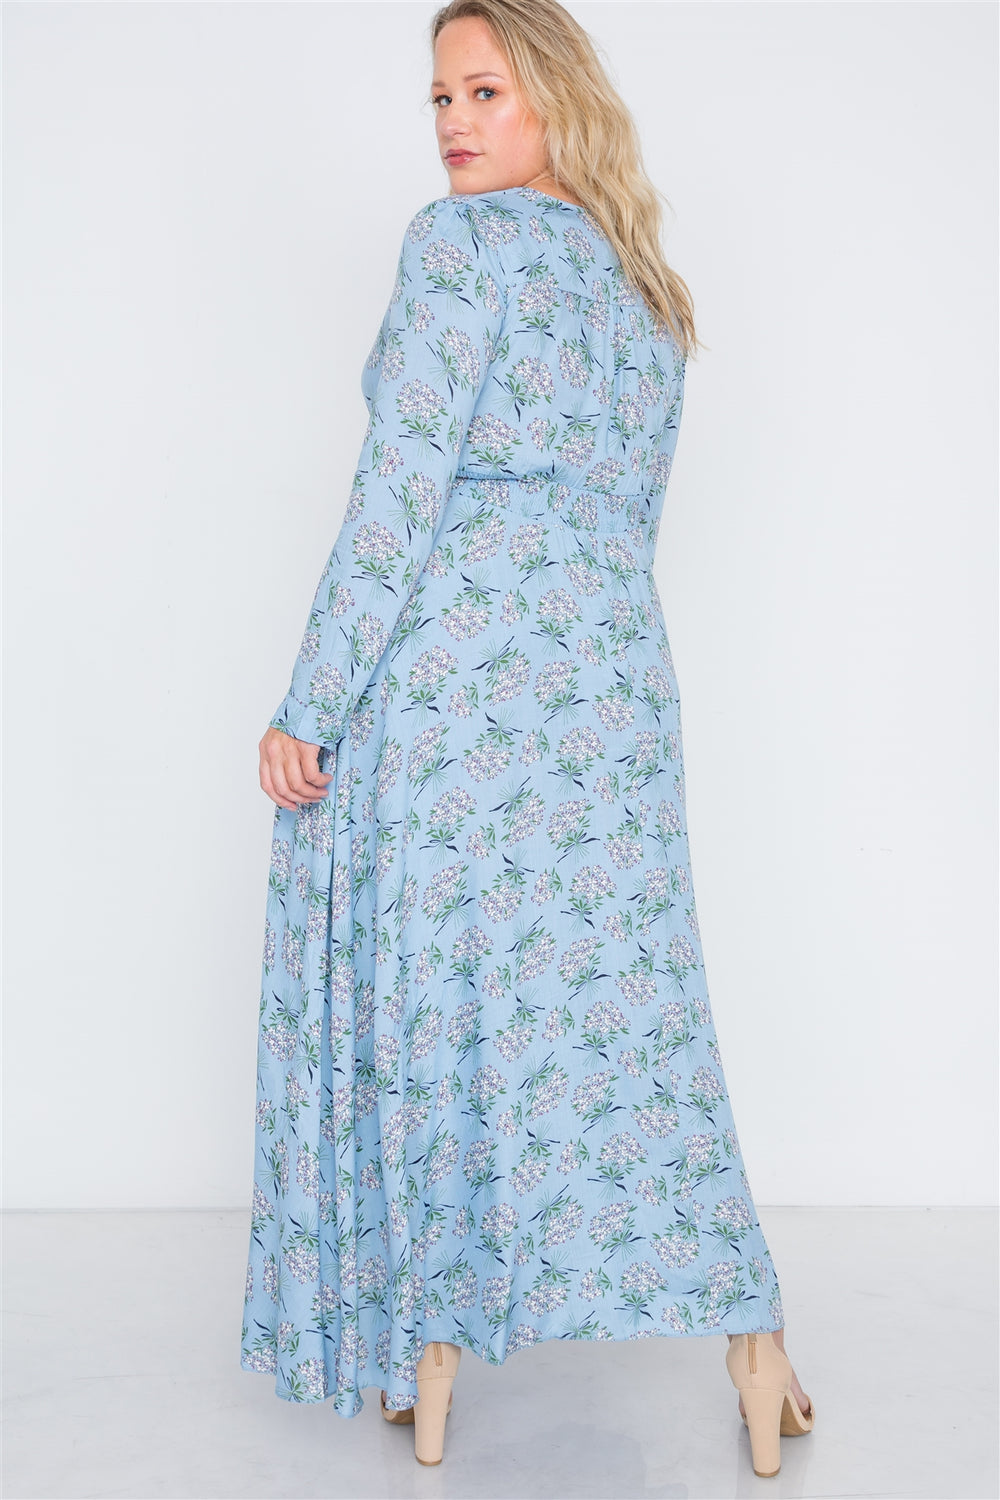 Plus Size Floral Summer Button Down Maxi Dress - Light Blue